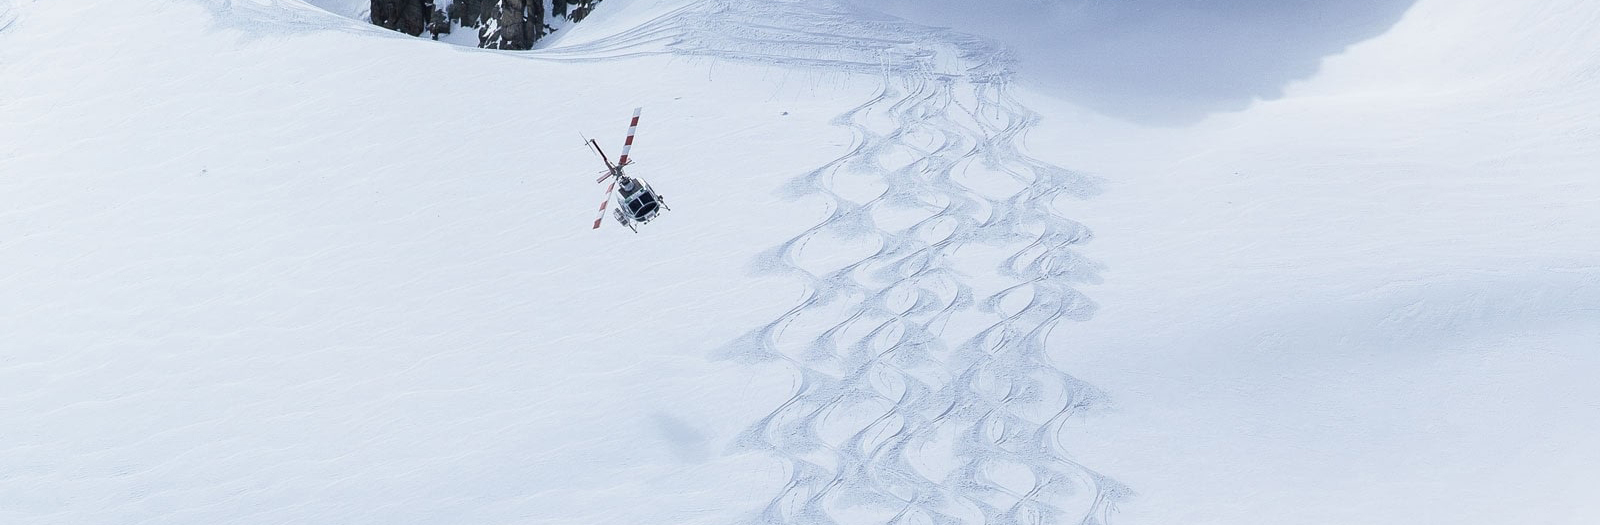 Plan a heli skiing trip | Heli ski vacation packages